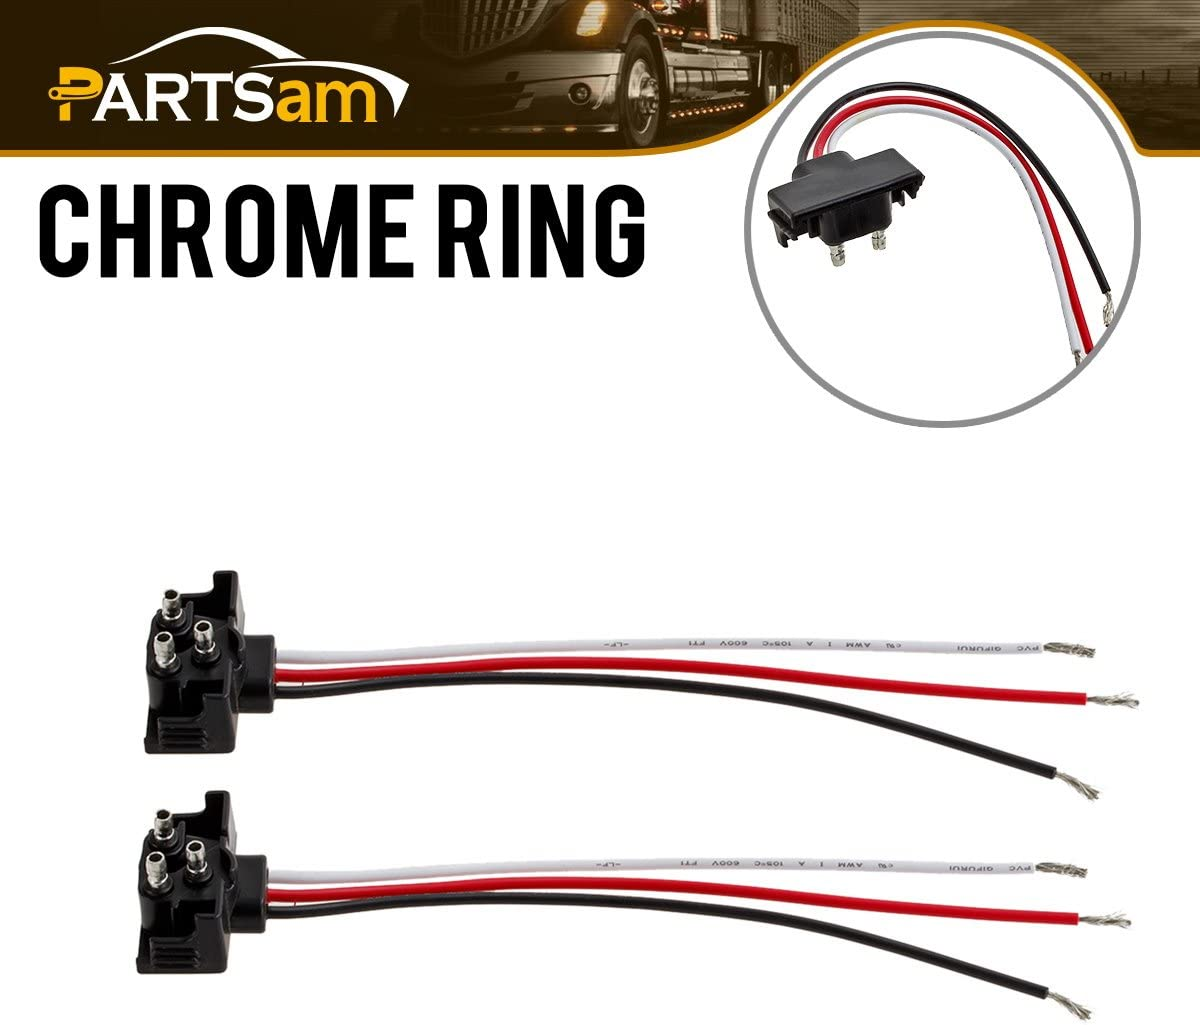 [SCHEMATICS_48IS]  Amazon.com: 3 Prong Pigtail Wire Plugs for Truck Trailer Bus Boat RV Stop  Turn Tail Lights 2pcs: Automotive   Truck Tractor Trailer Light Wiring      Amazon.com